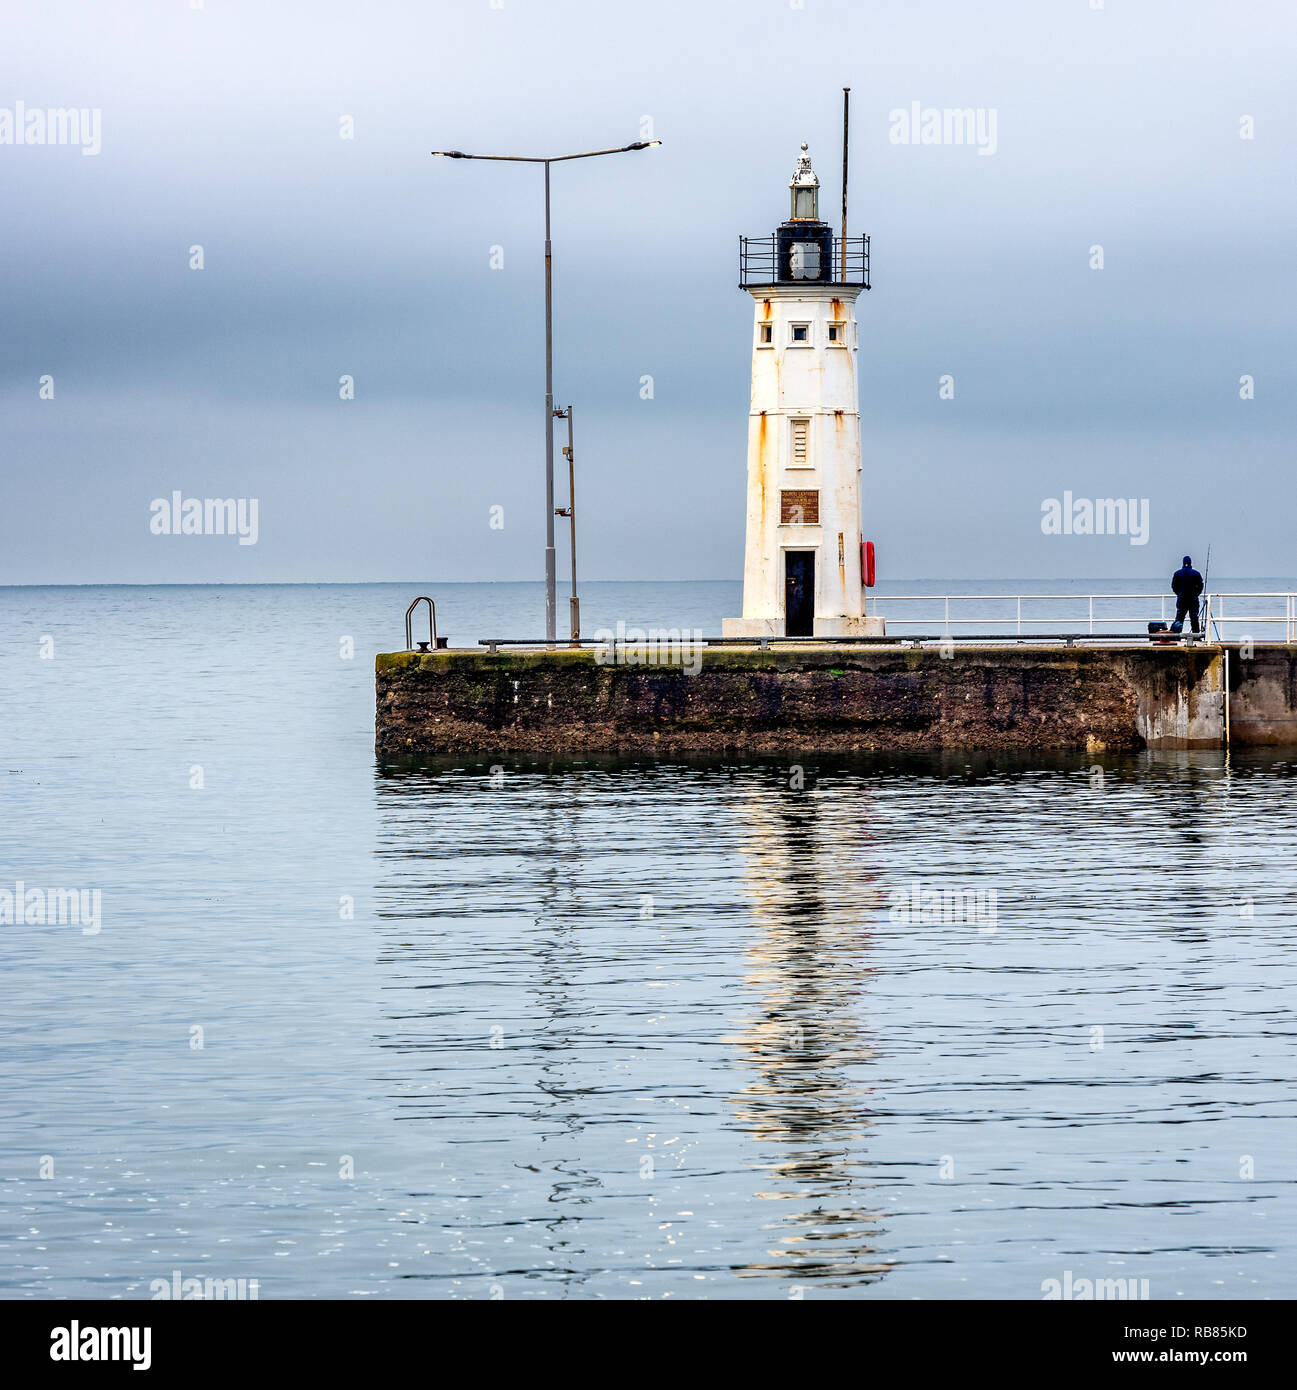 The octagonal Lighthouse in Anstruther, built  in 1880 and was dedicated to Dr Thomas Chalmers, a local scientist . It marks the end of the breakwater - Stock Image